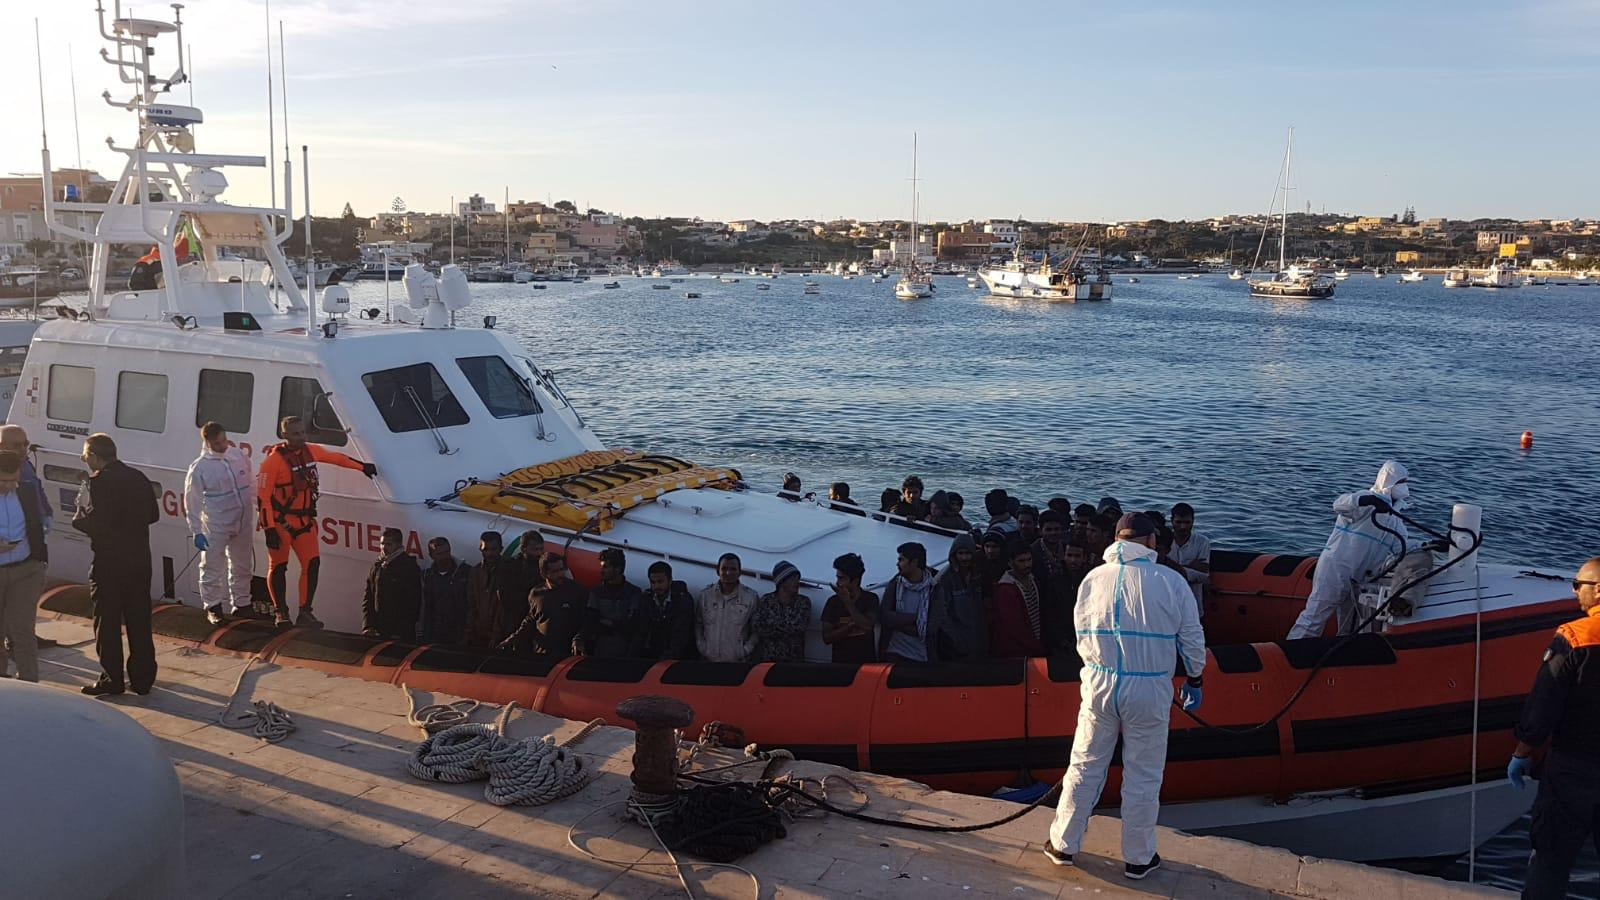 Migranti: atti su sequestro Jonio in ritardo in Procura, domani decisione Pm